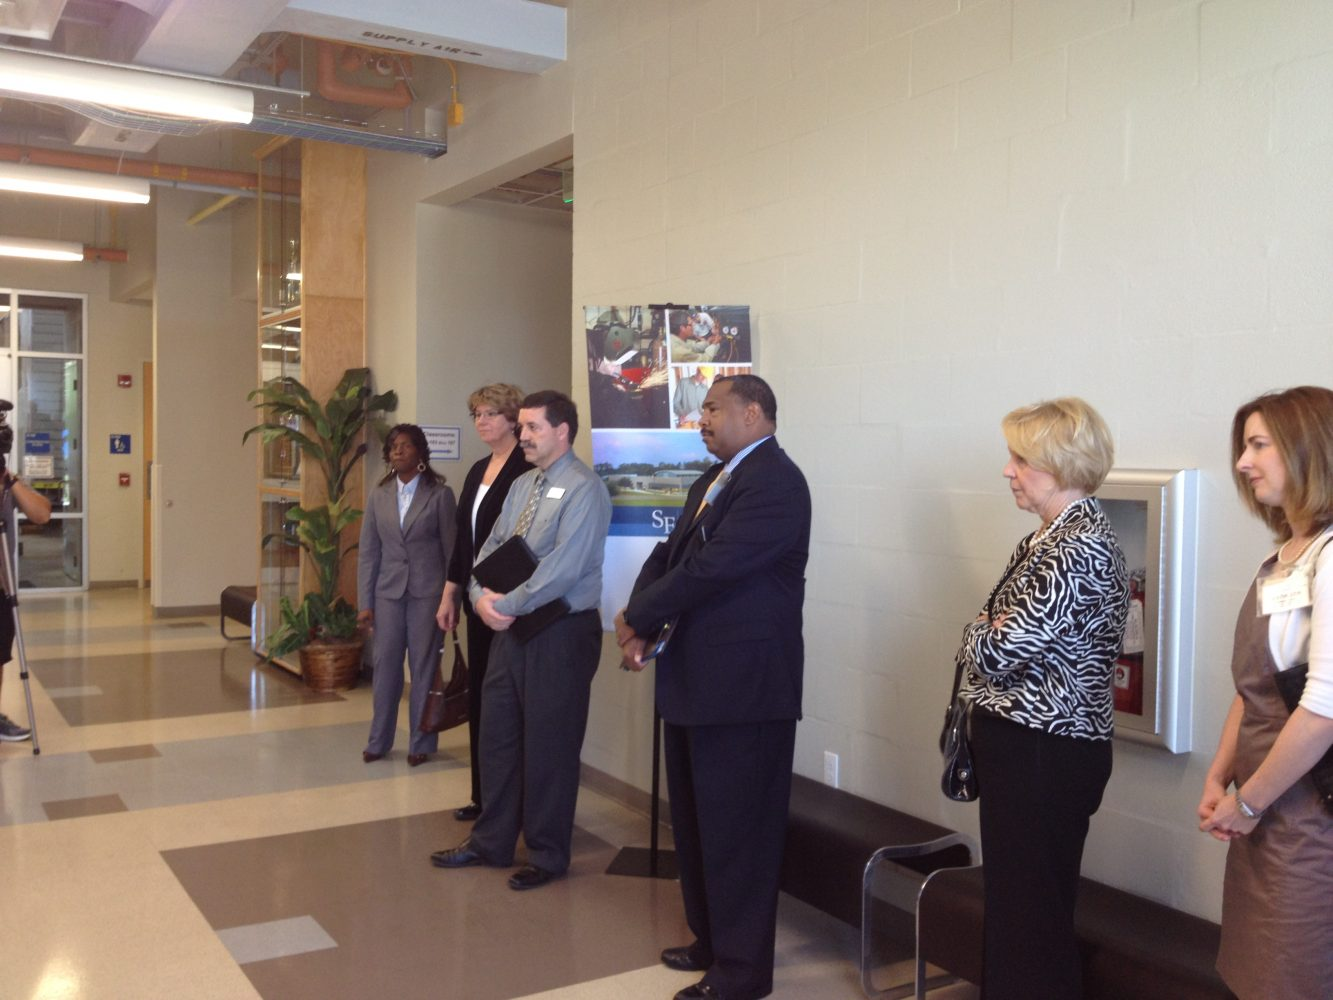 New Chancellor for the FL Department of Education, Rod Duckworth touring the SFC Perry Construction Institute.